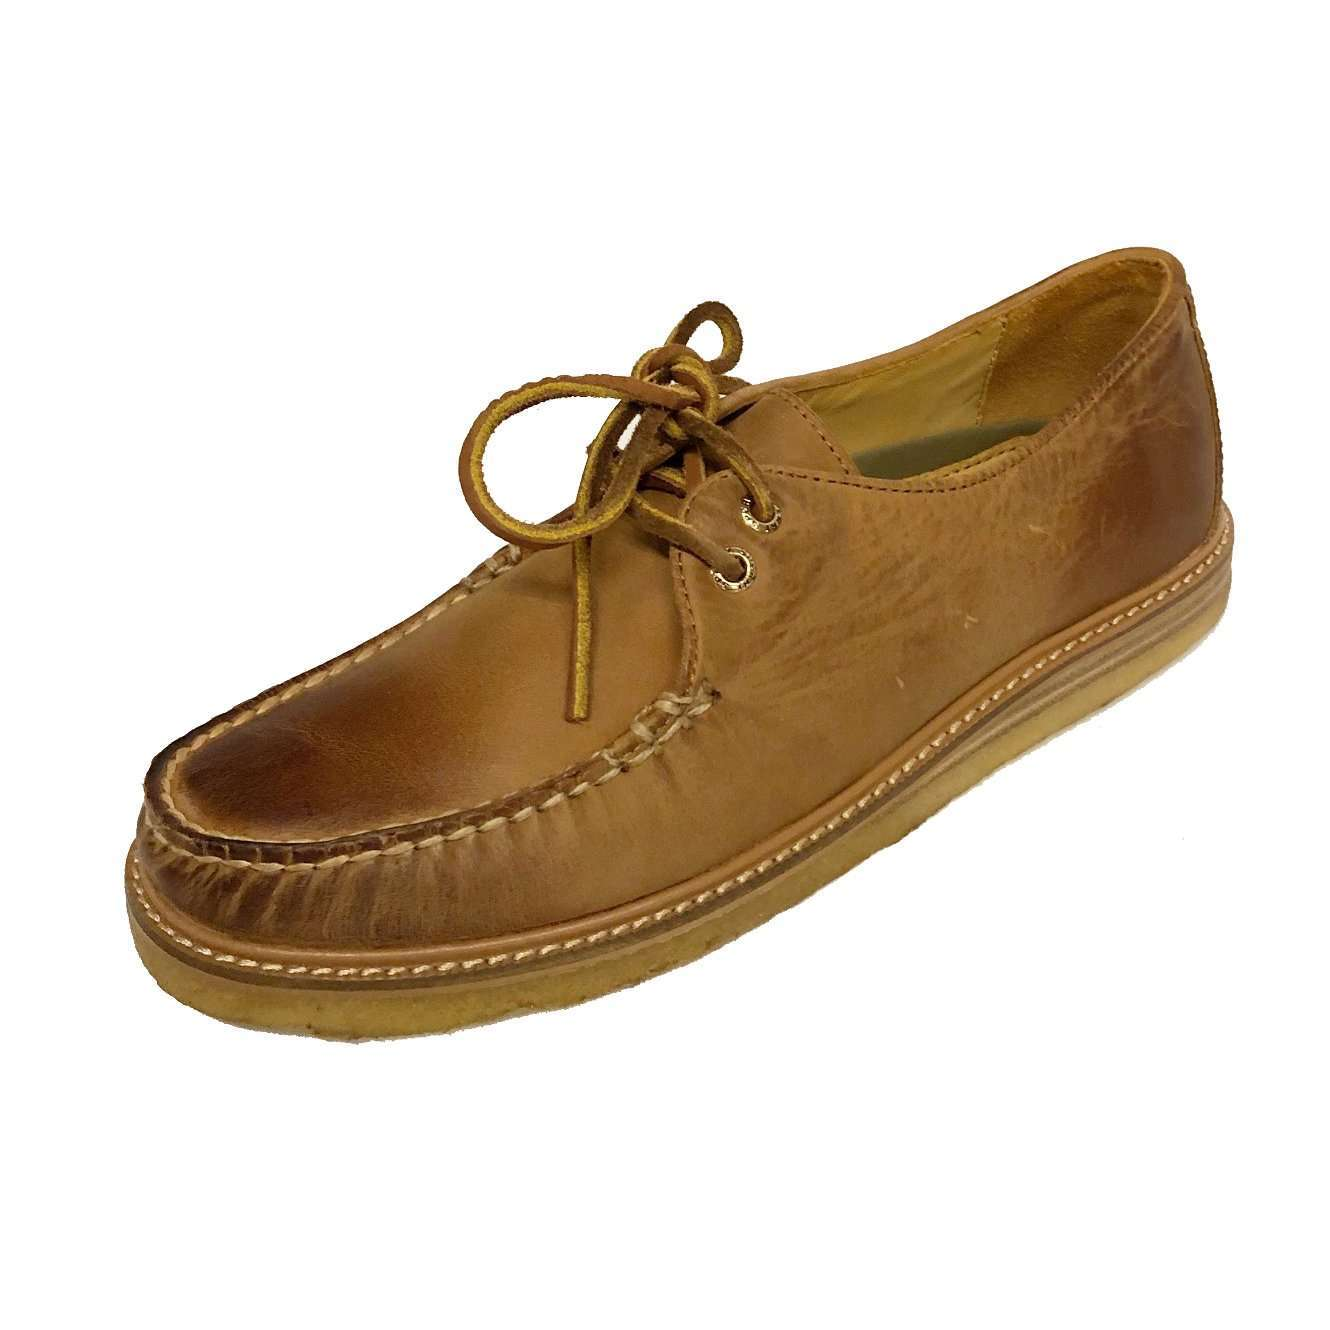 Sperry Men's Top-Sider GOLD Captain's Crepe Leath Oxford